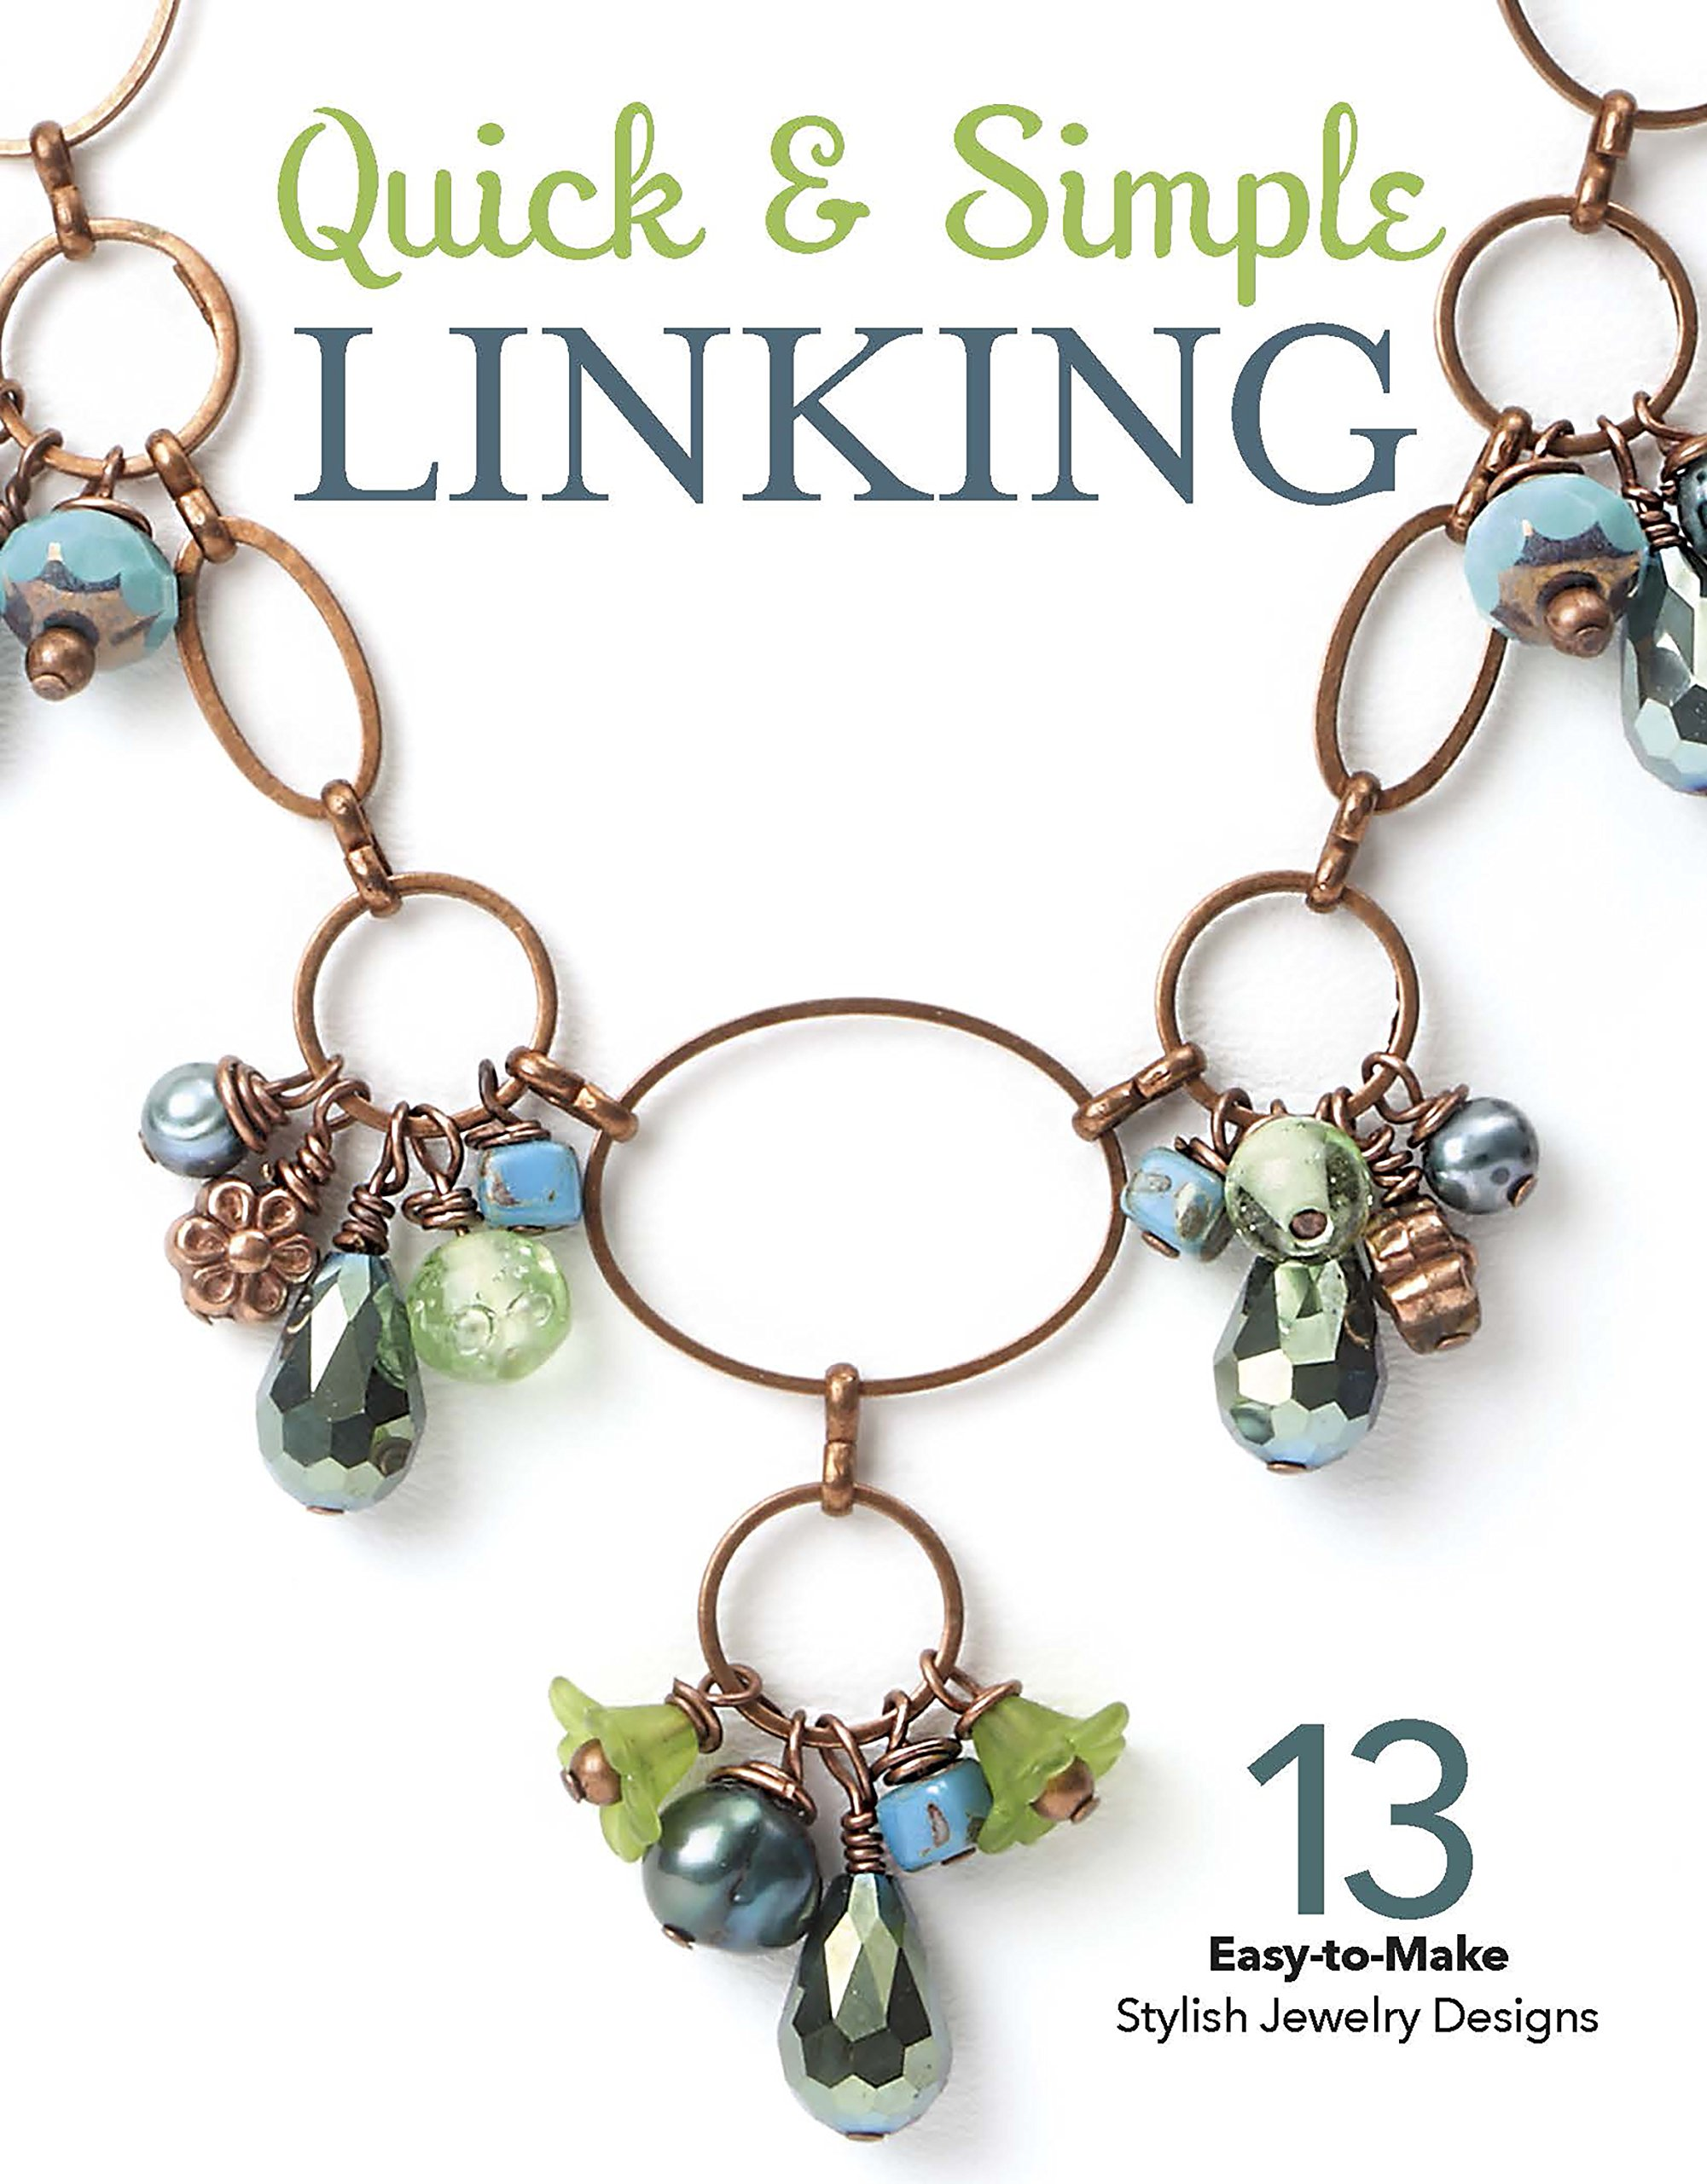 Quick & Simple Linking: 13 Easy-to-Make Stylish Jewelry Designs (Quick & Simple Beading) ebook